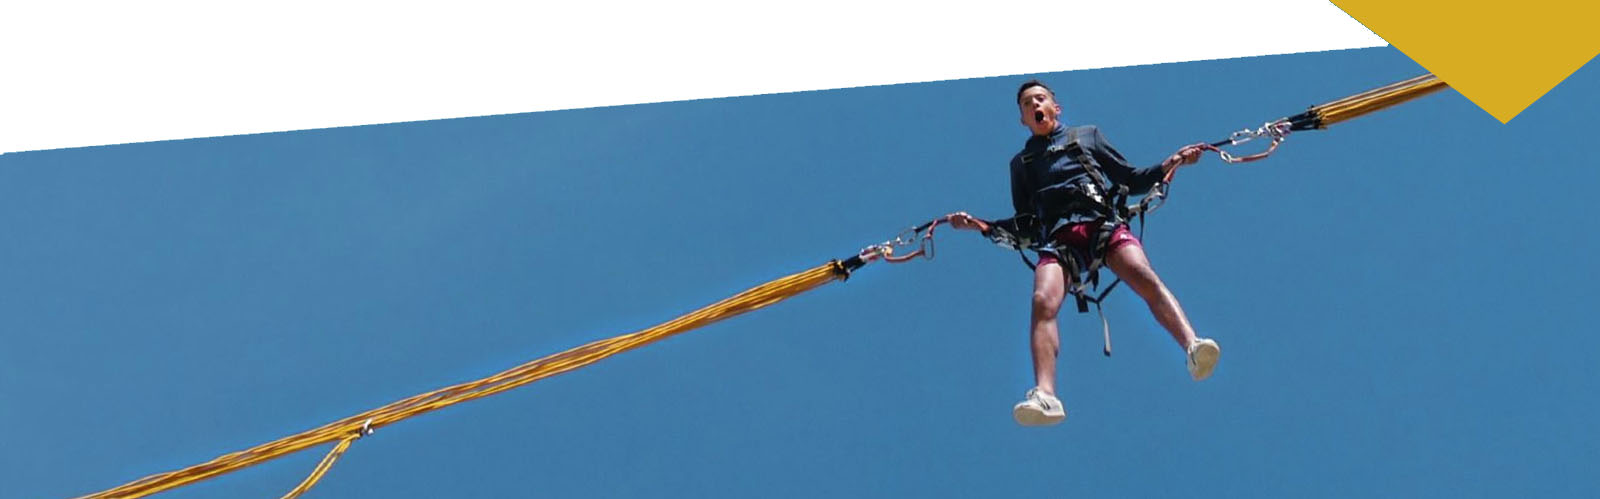 Bungy_ejection1